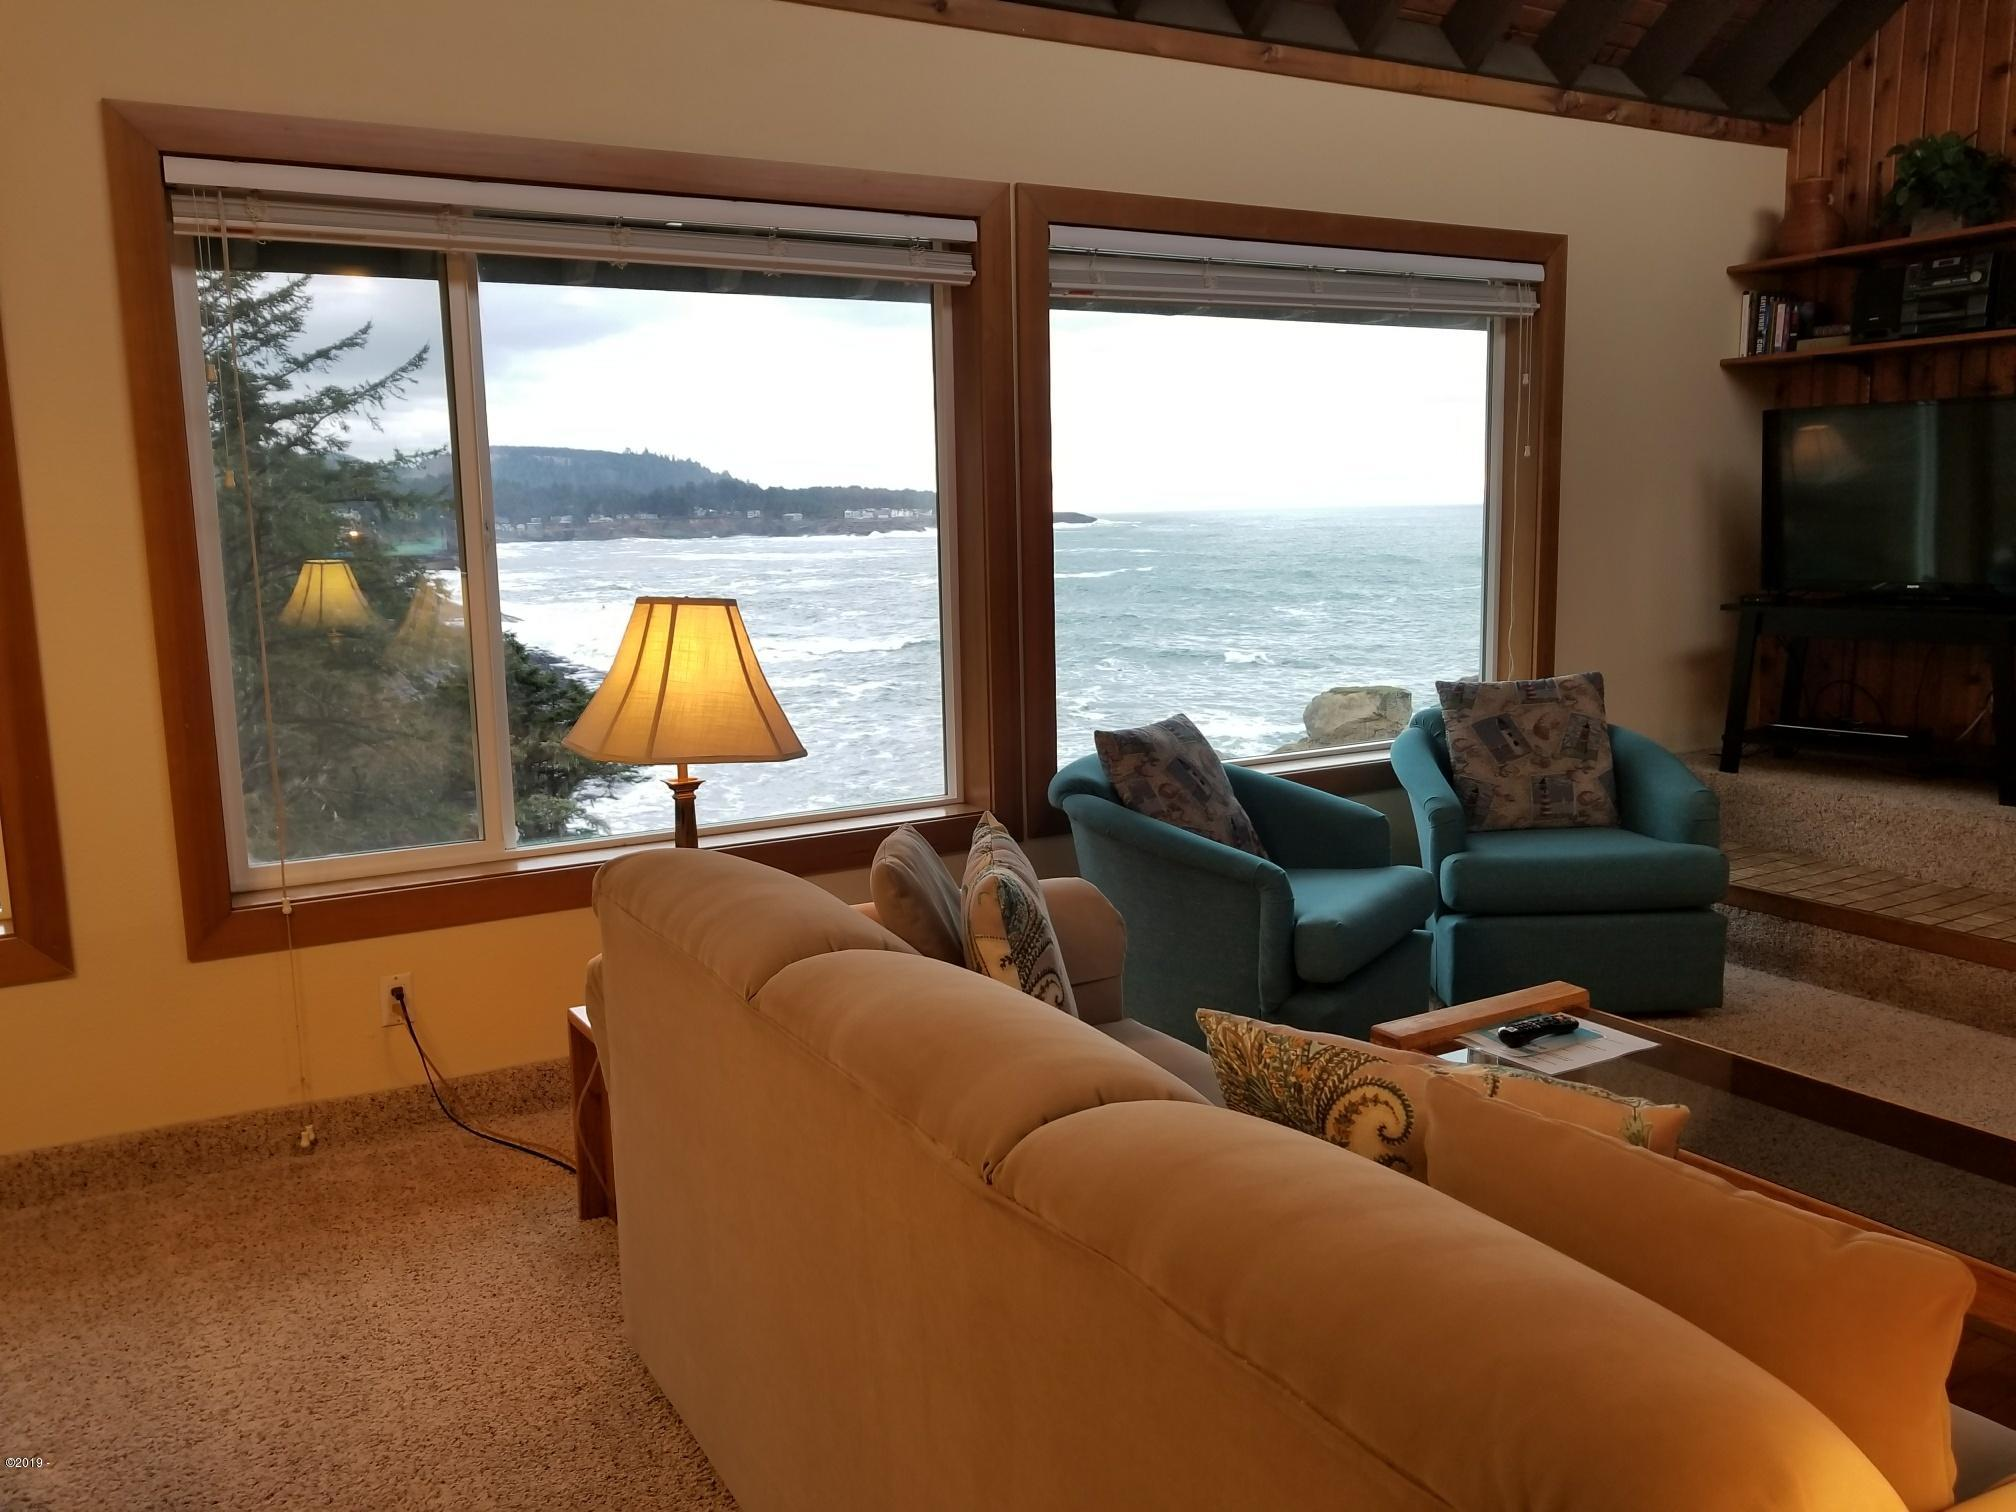 20 NW Sunset St F1-wk8, Depoe Bay, OR 97341 - Living Room and Ocean View